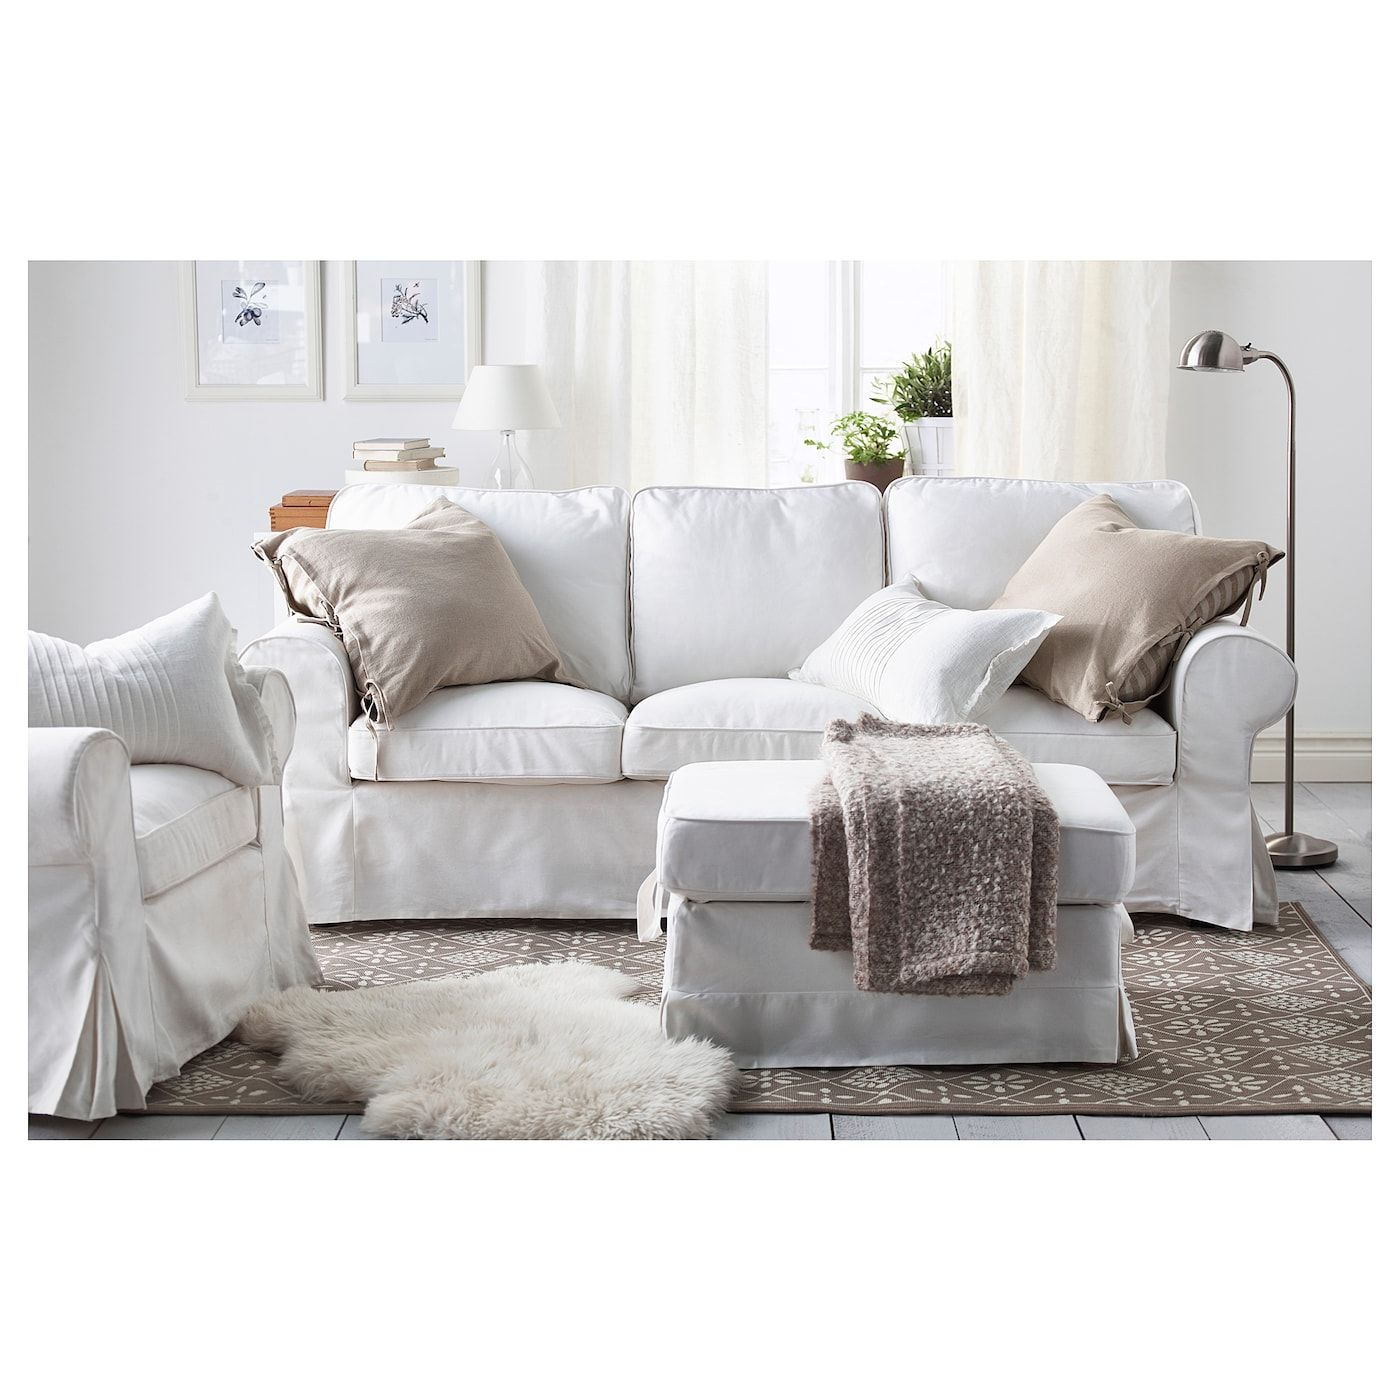 Full Size of Ektorp Sofa Couch With Chaise Cover Ikea Singapore Bed 3 Seat Sleeper Dimensions Review Uk Covers 2 Seater Australia Corner 3er Vittaryd Wei Brühl Garten Sofa Ektorp Sofa